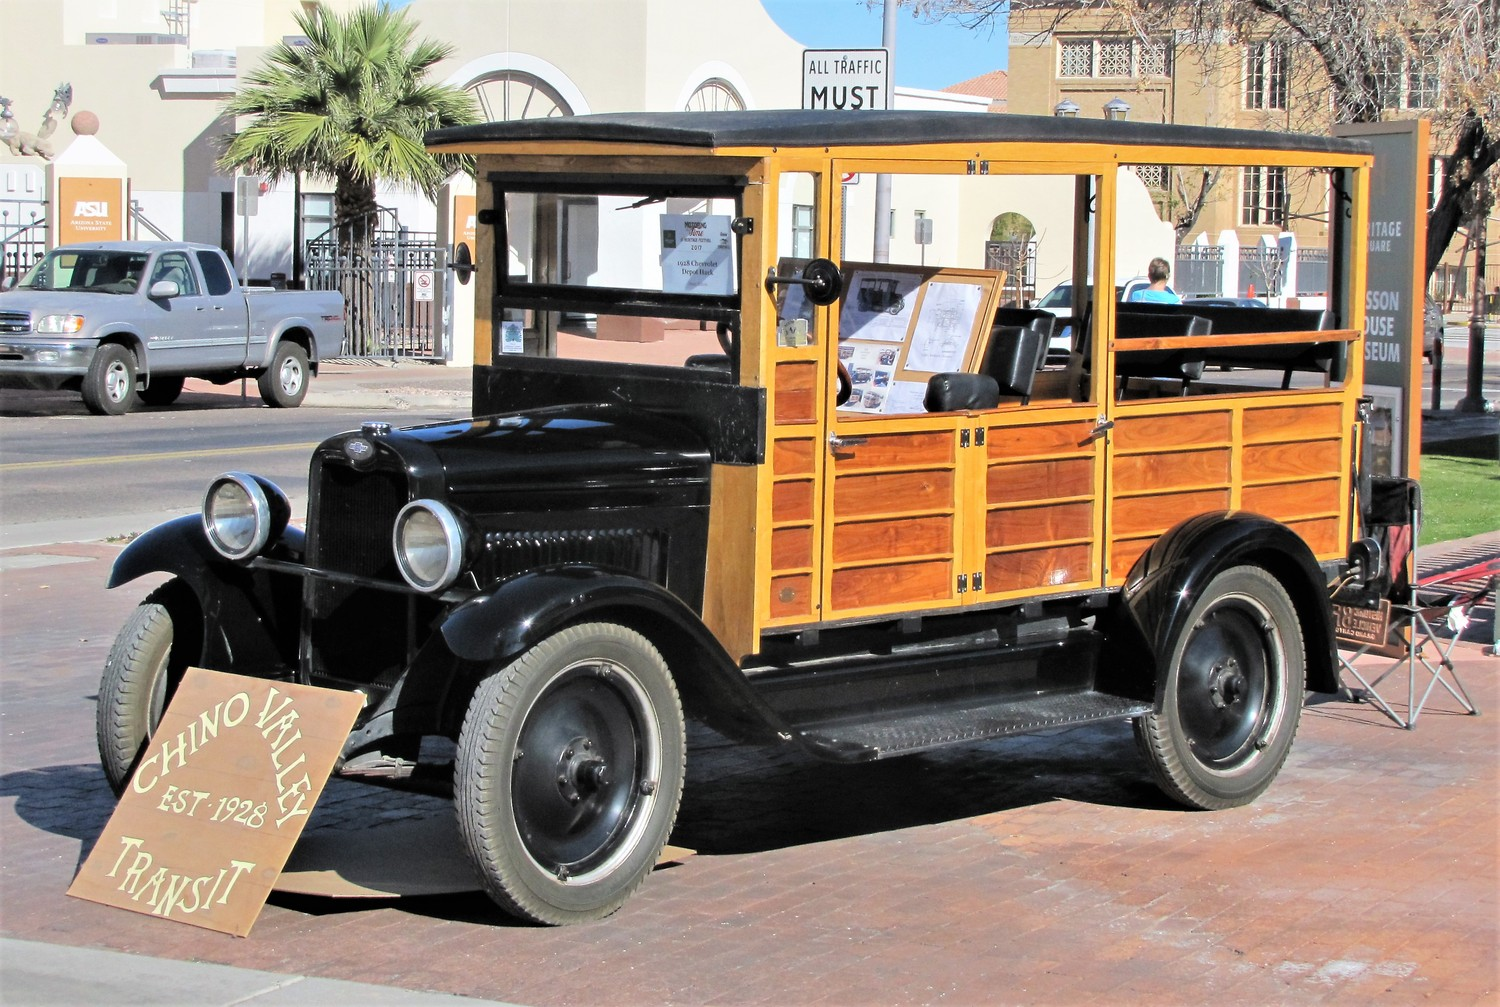 , 'Motoring thru Time' presents history on a roll in Phoenix, ClassicCars.com Journal